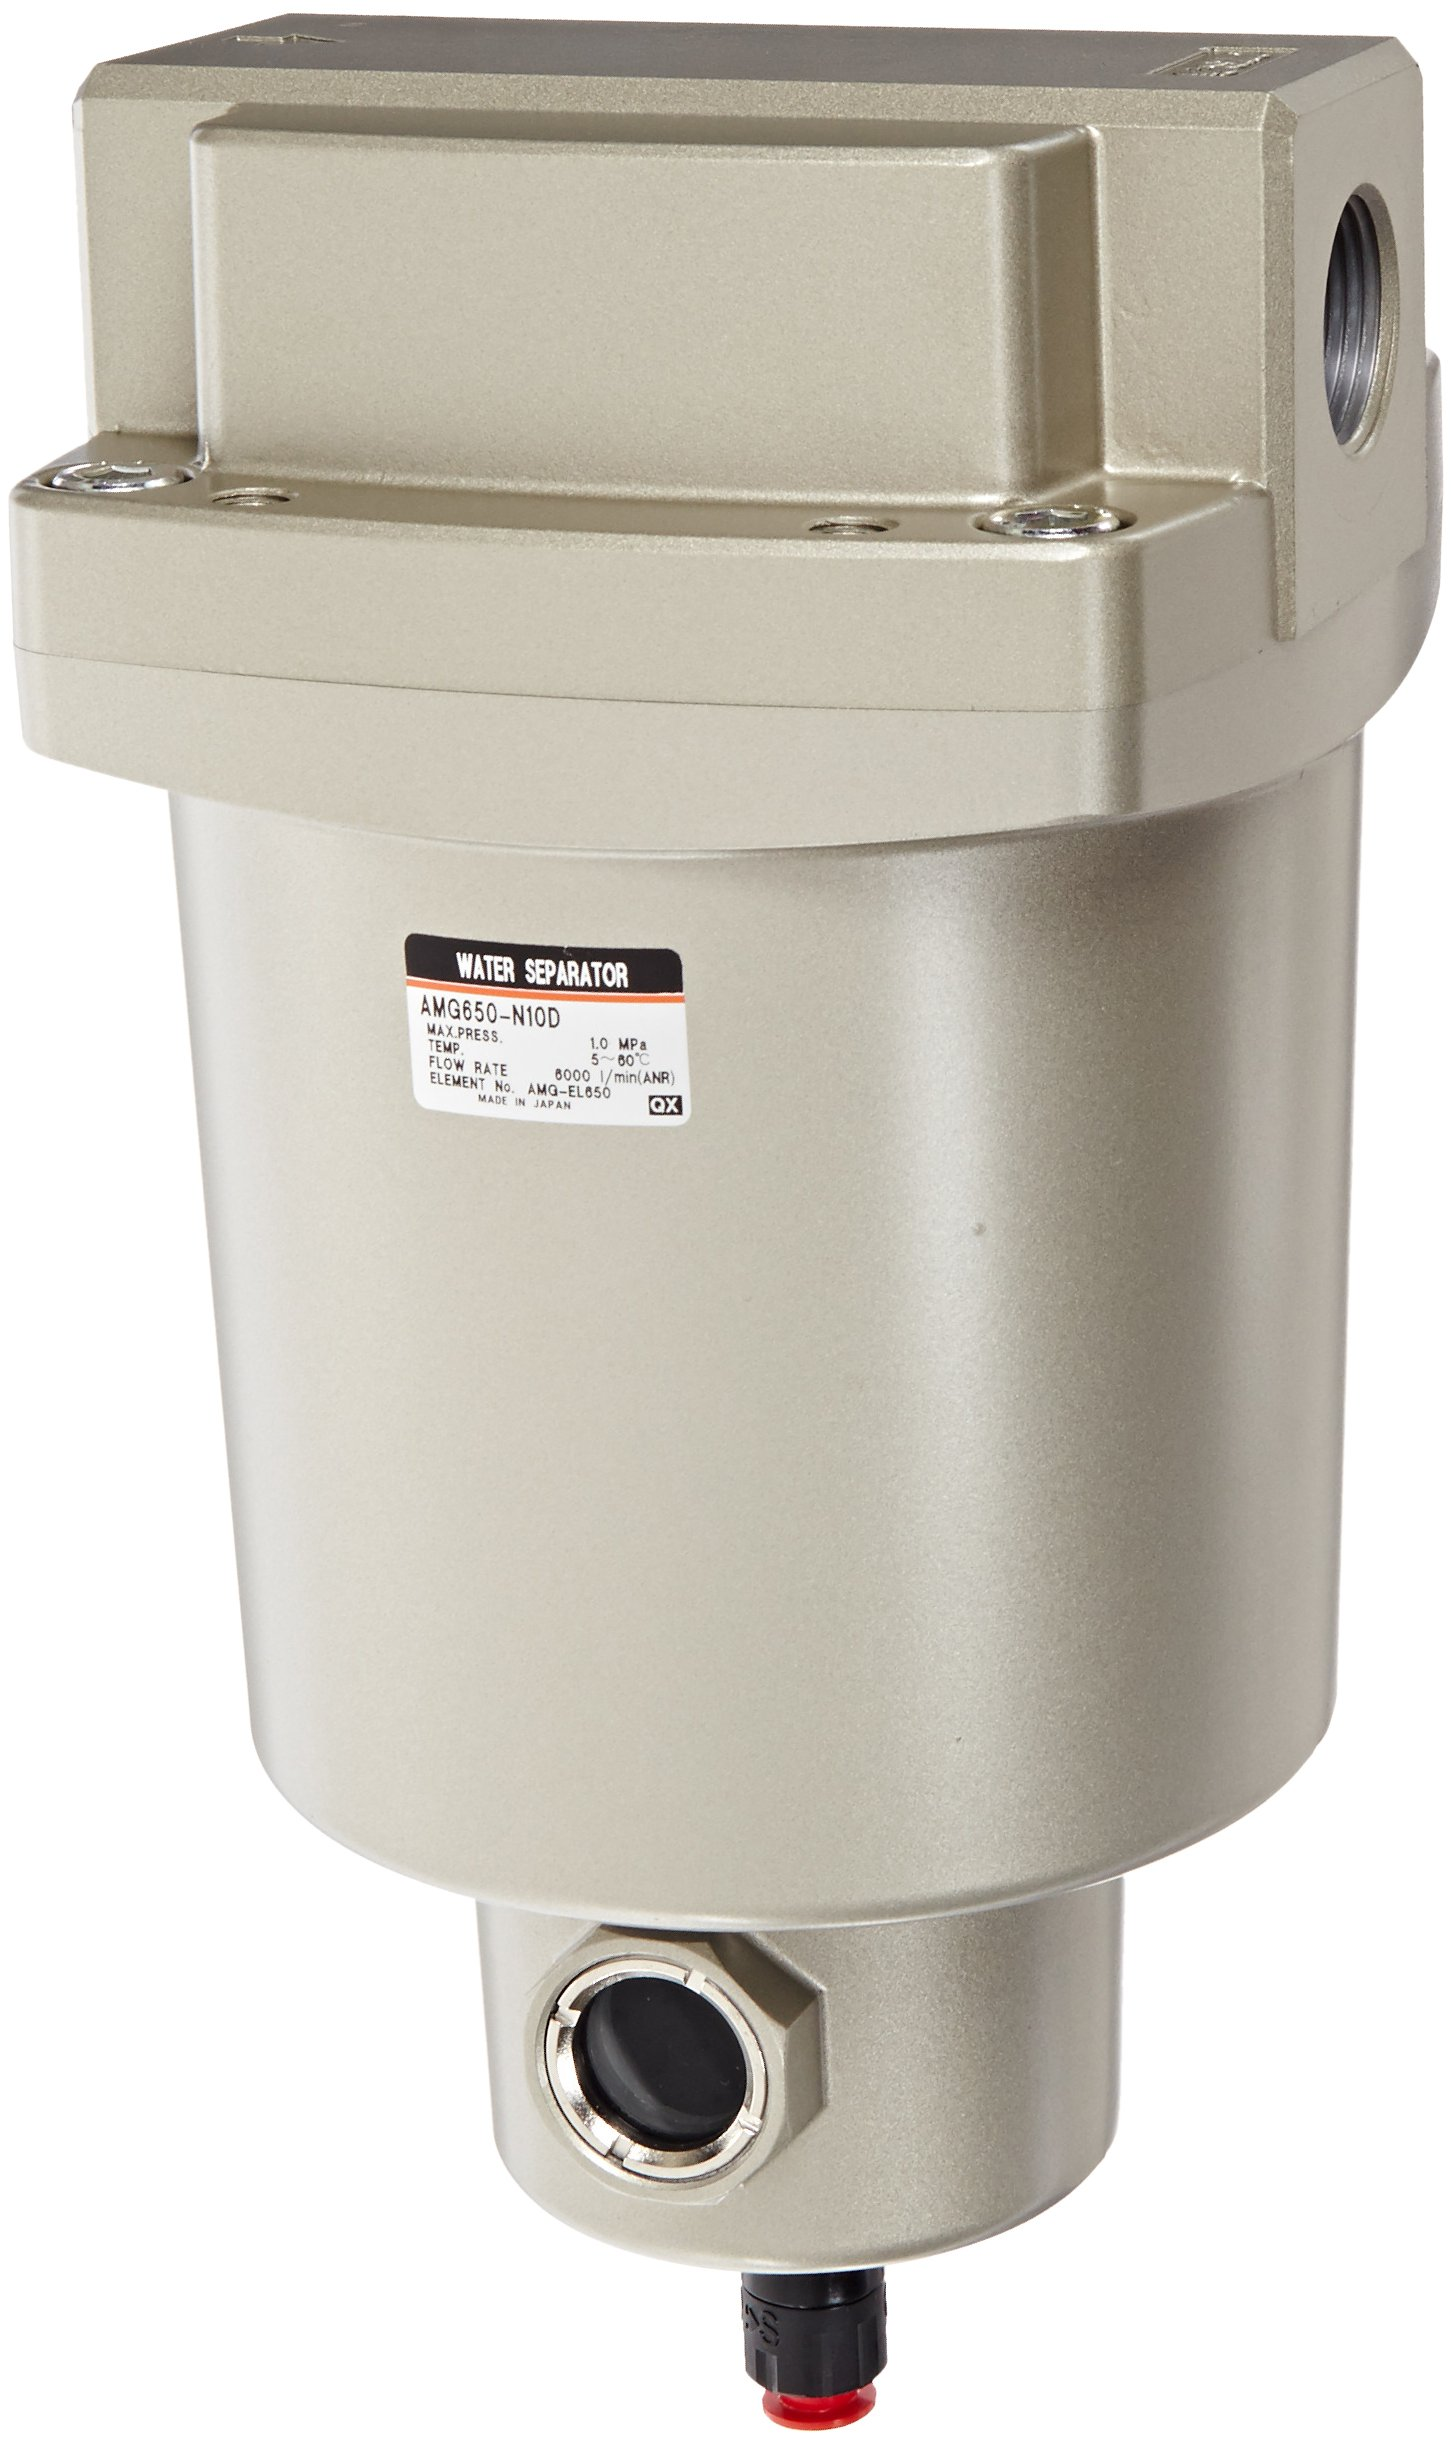 SMC AMG650-N10D Water Separator, N.O. Auto Drain, 6,000 L/min, 1'' NPT by SMC